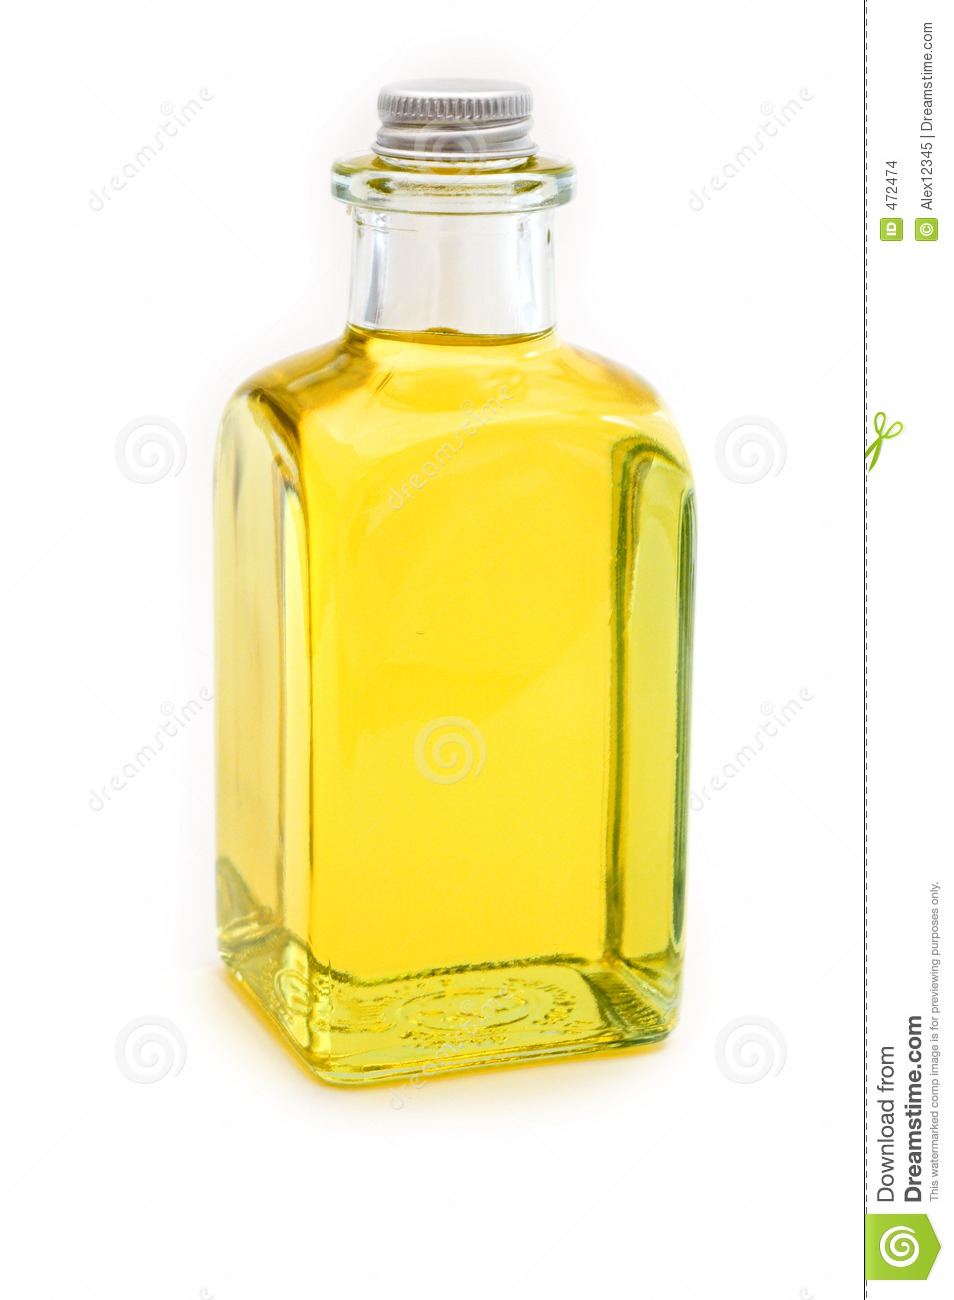 Flask of yellow oil